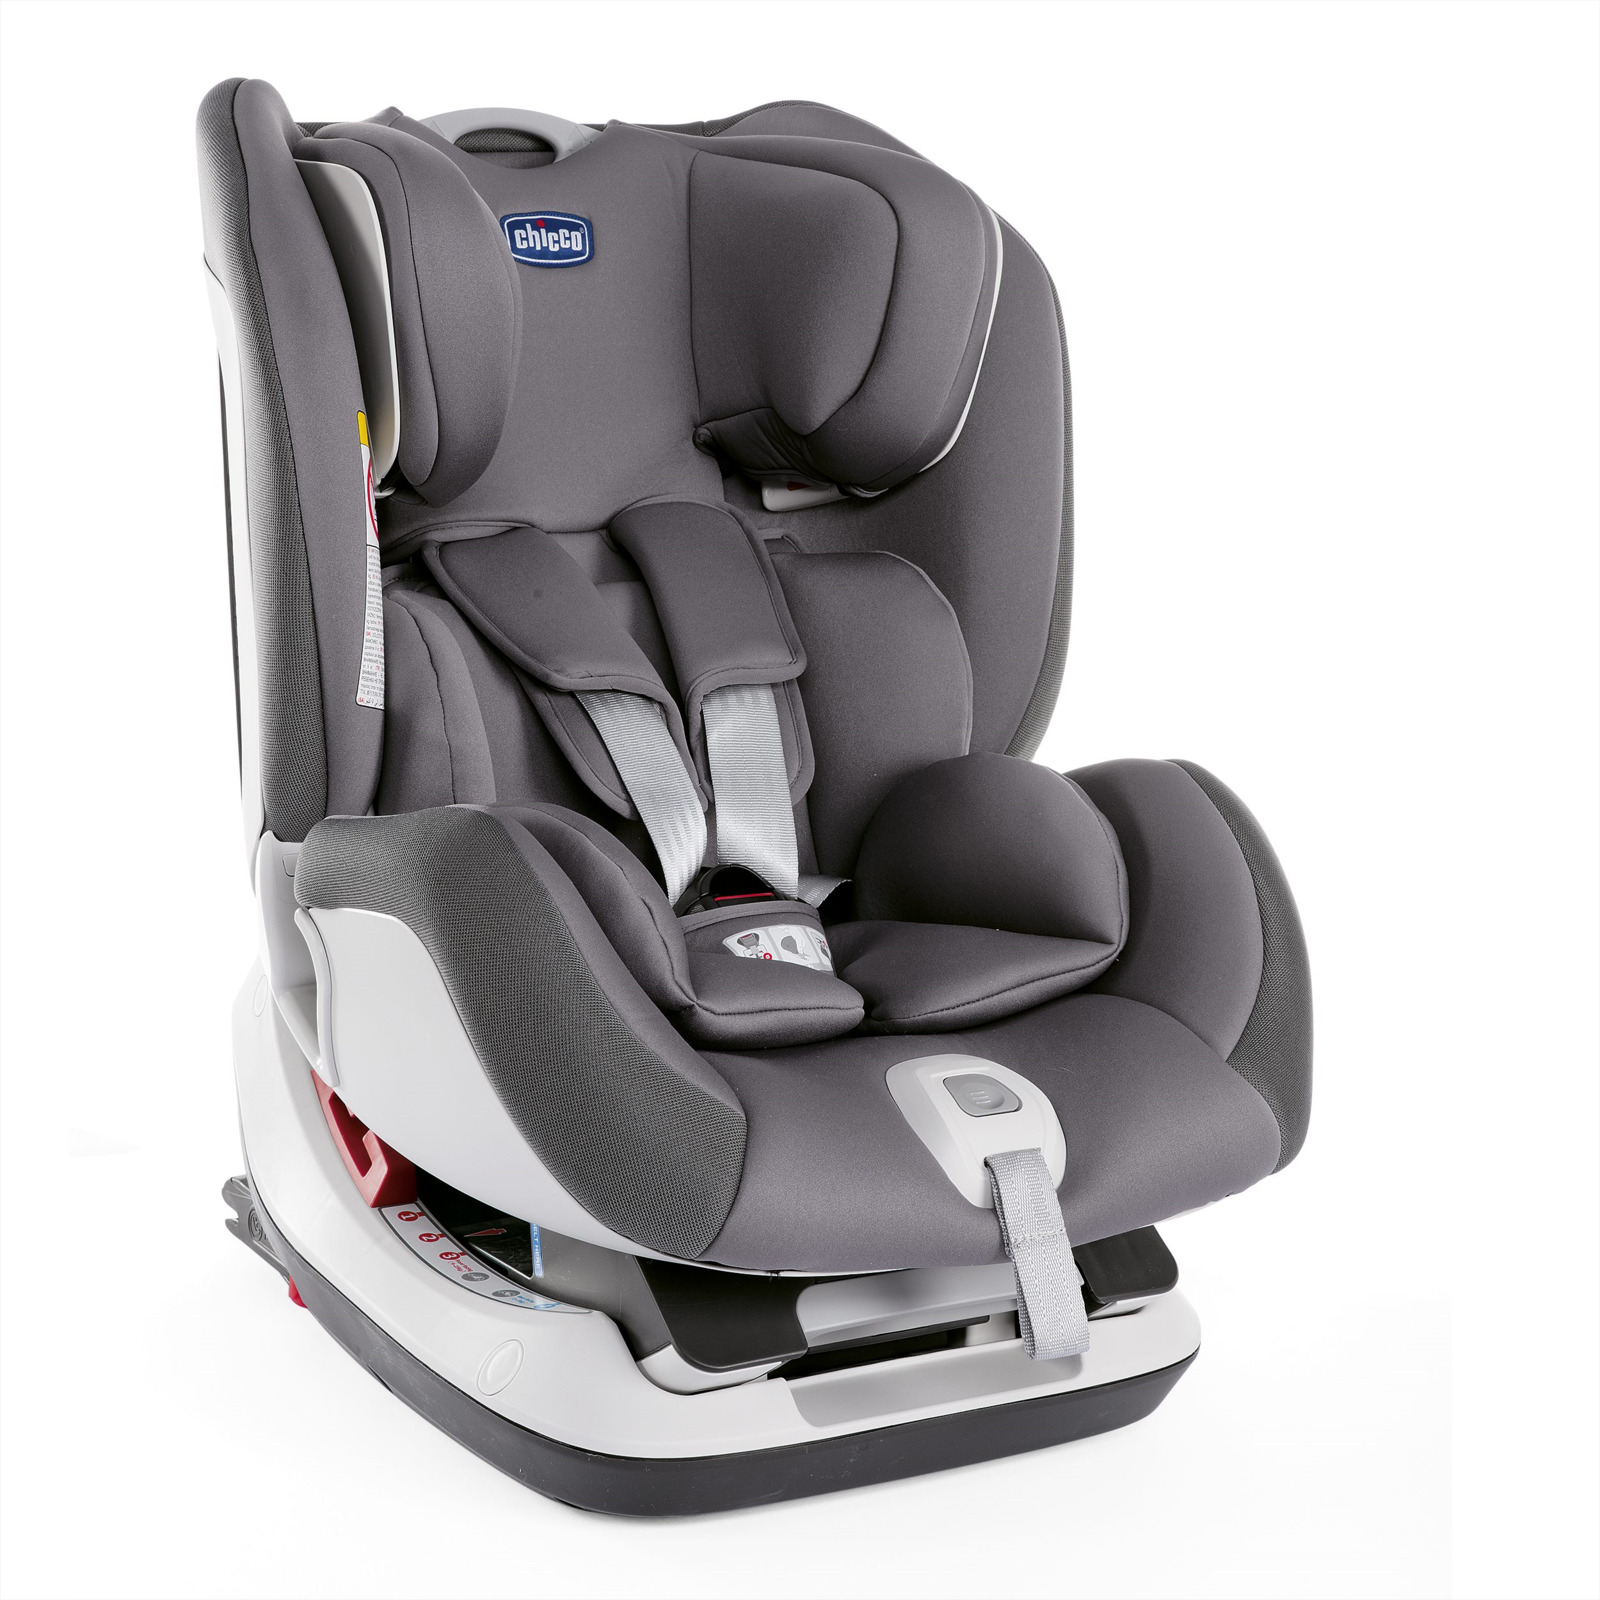 Автокресло Chicco Seat-Up 012, до 25 кг, цвет: серый автокресло chicco seat up pearl